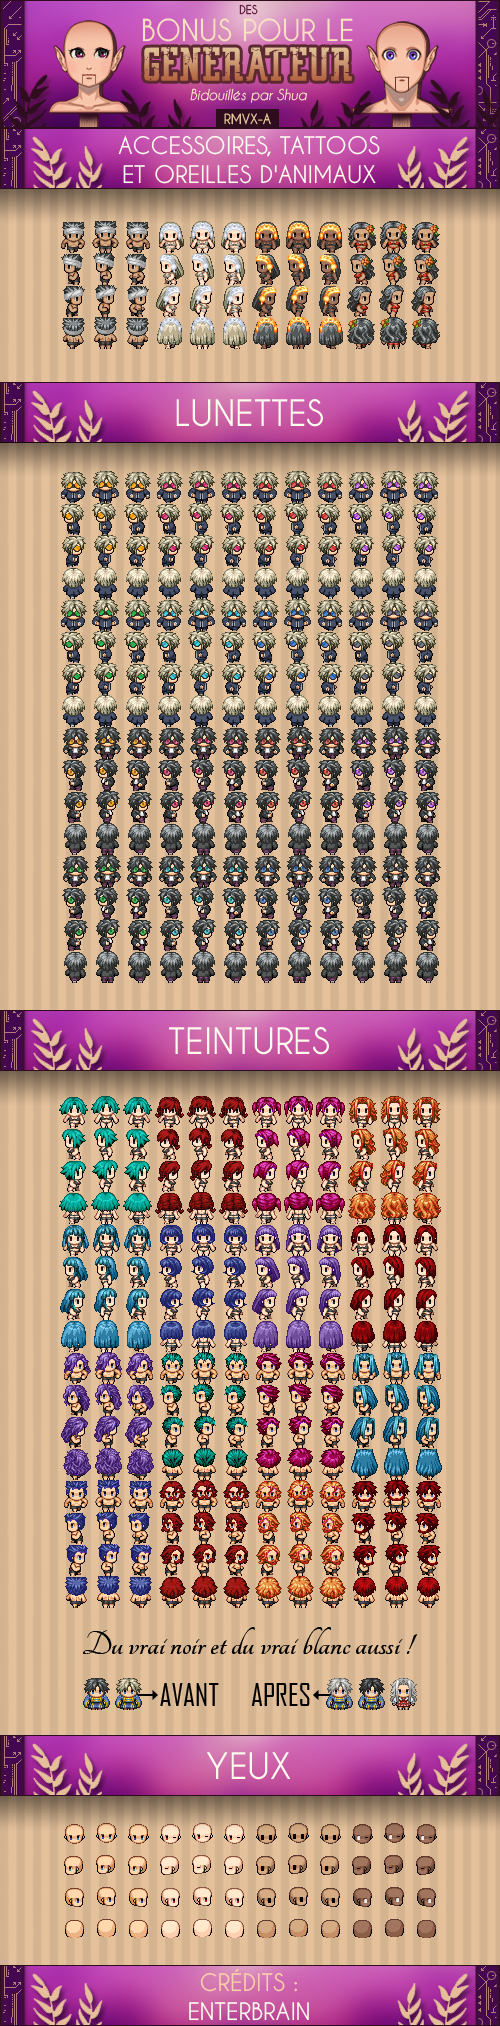 Bibliothèque des ressources VX Ace Charas & Faces Generator_edit___mini_by_shuatinwe-daxef8x